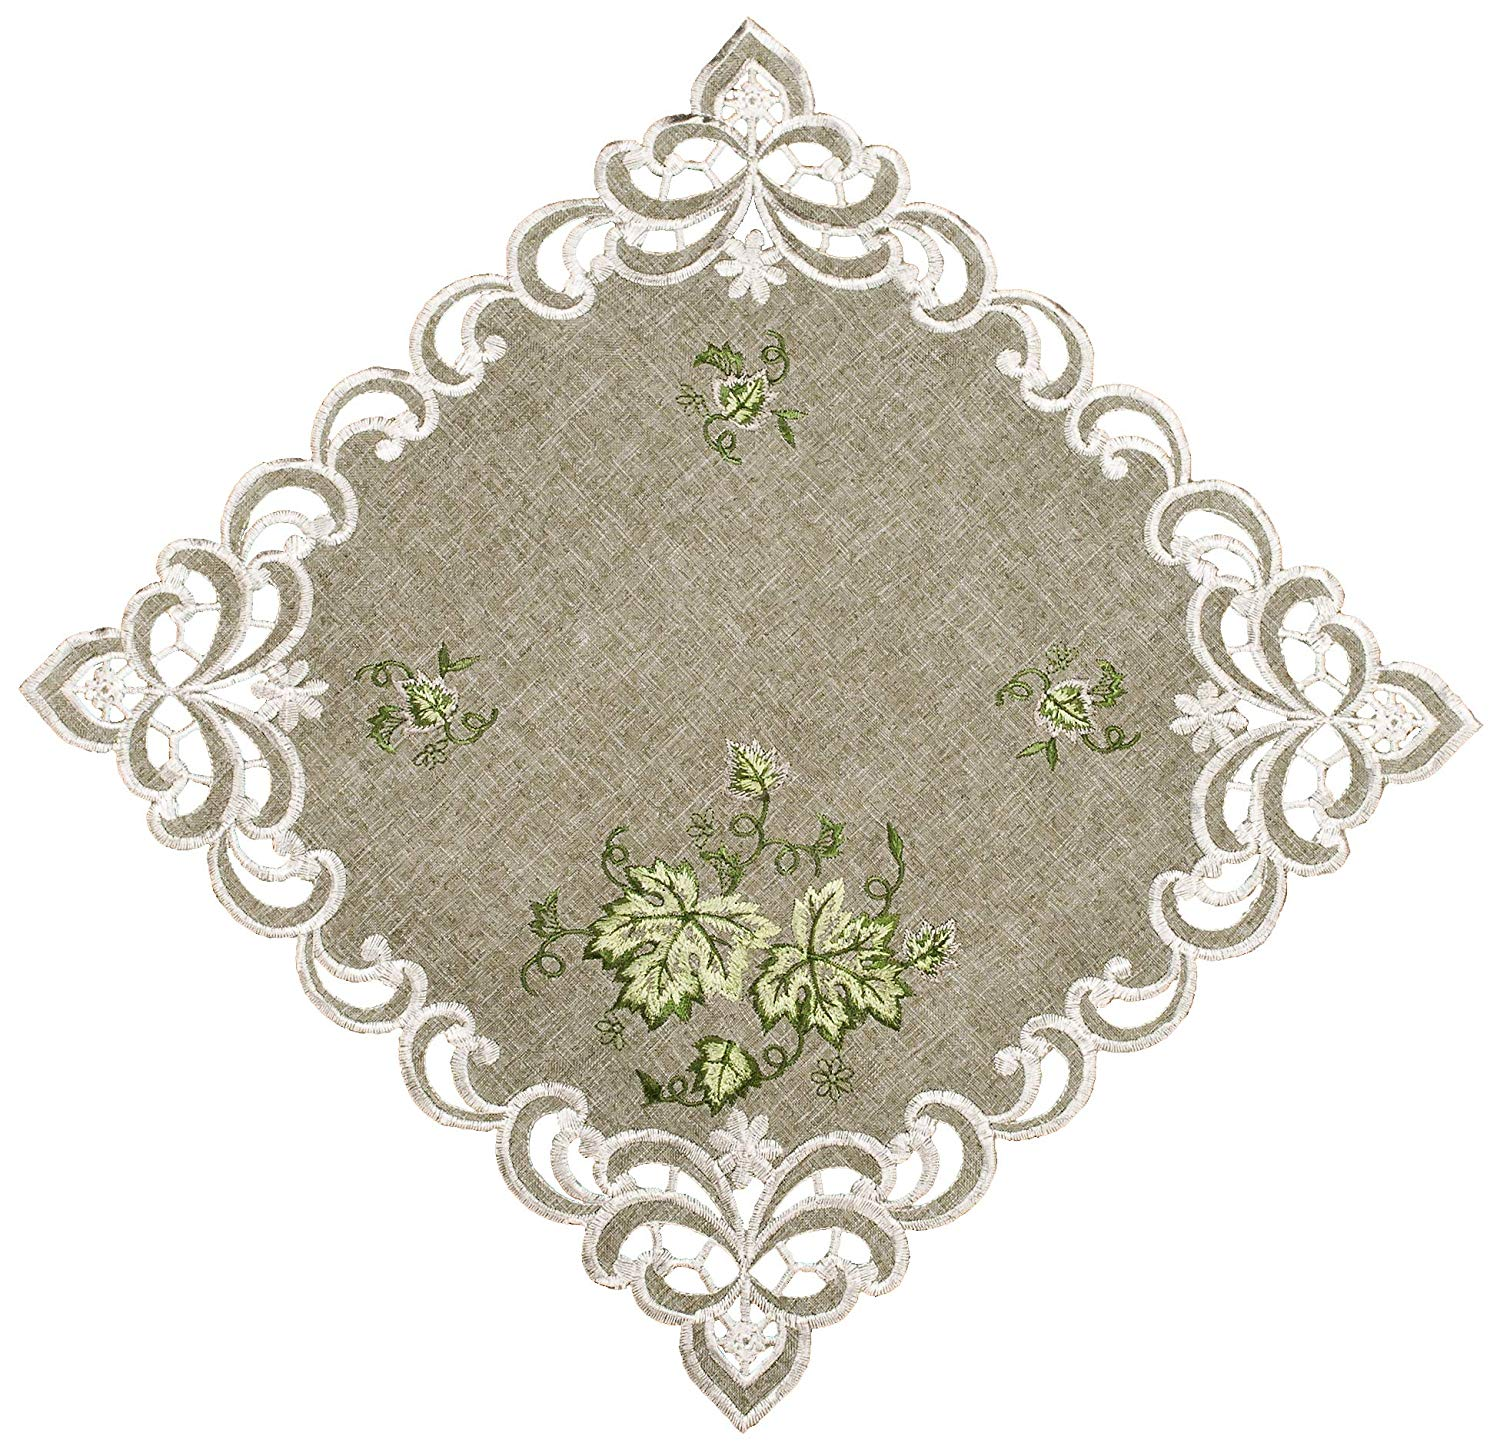 embroidered green leaf square doily